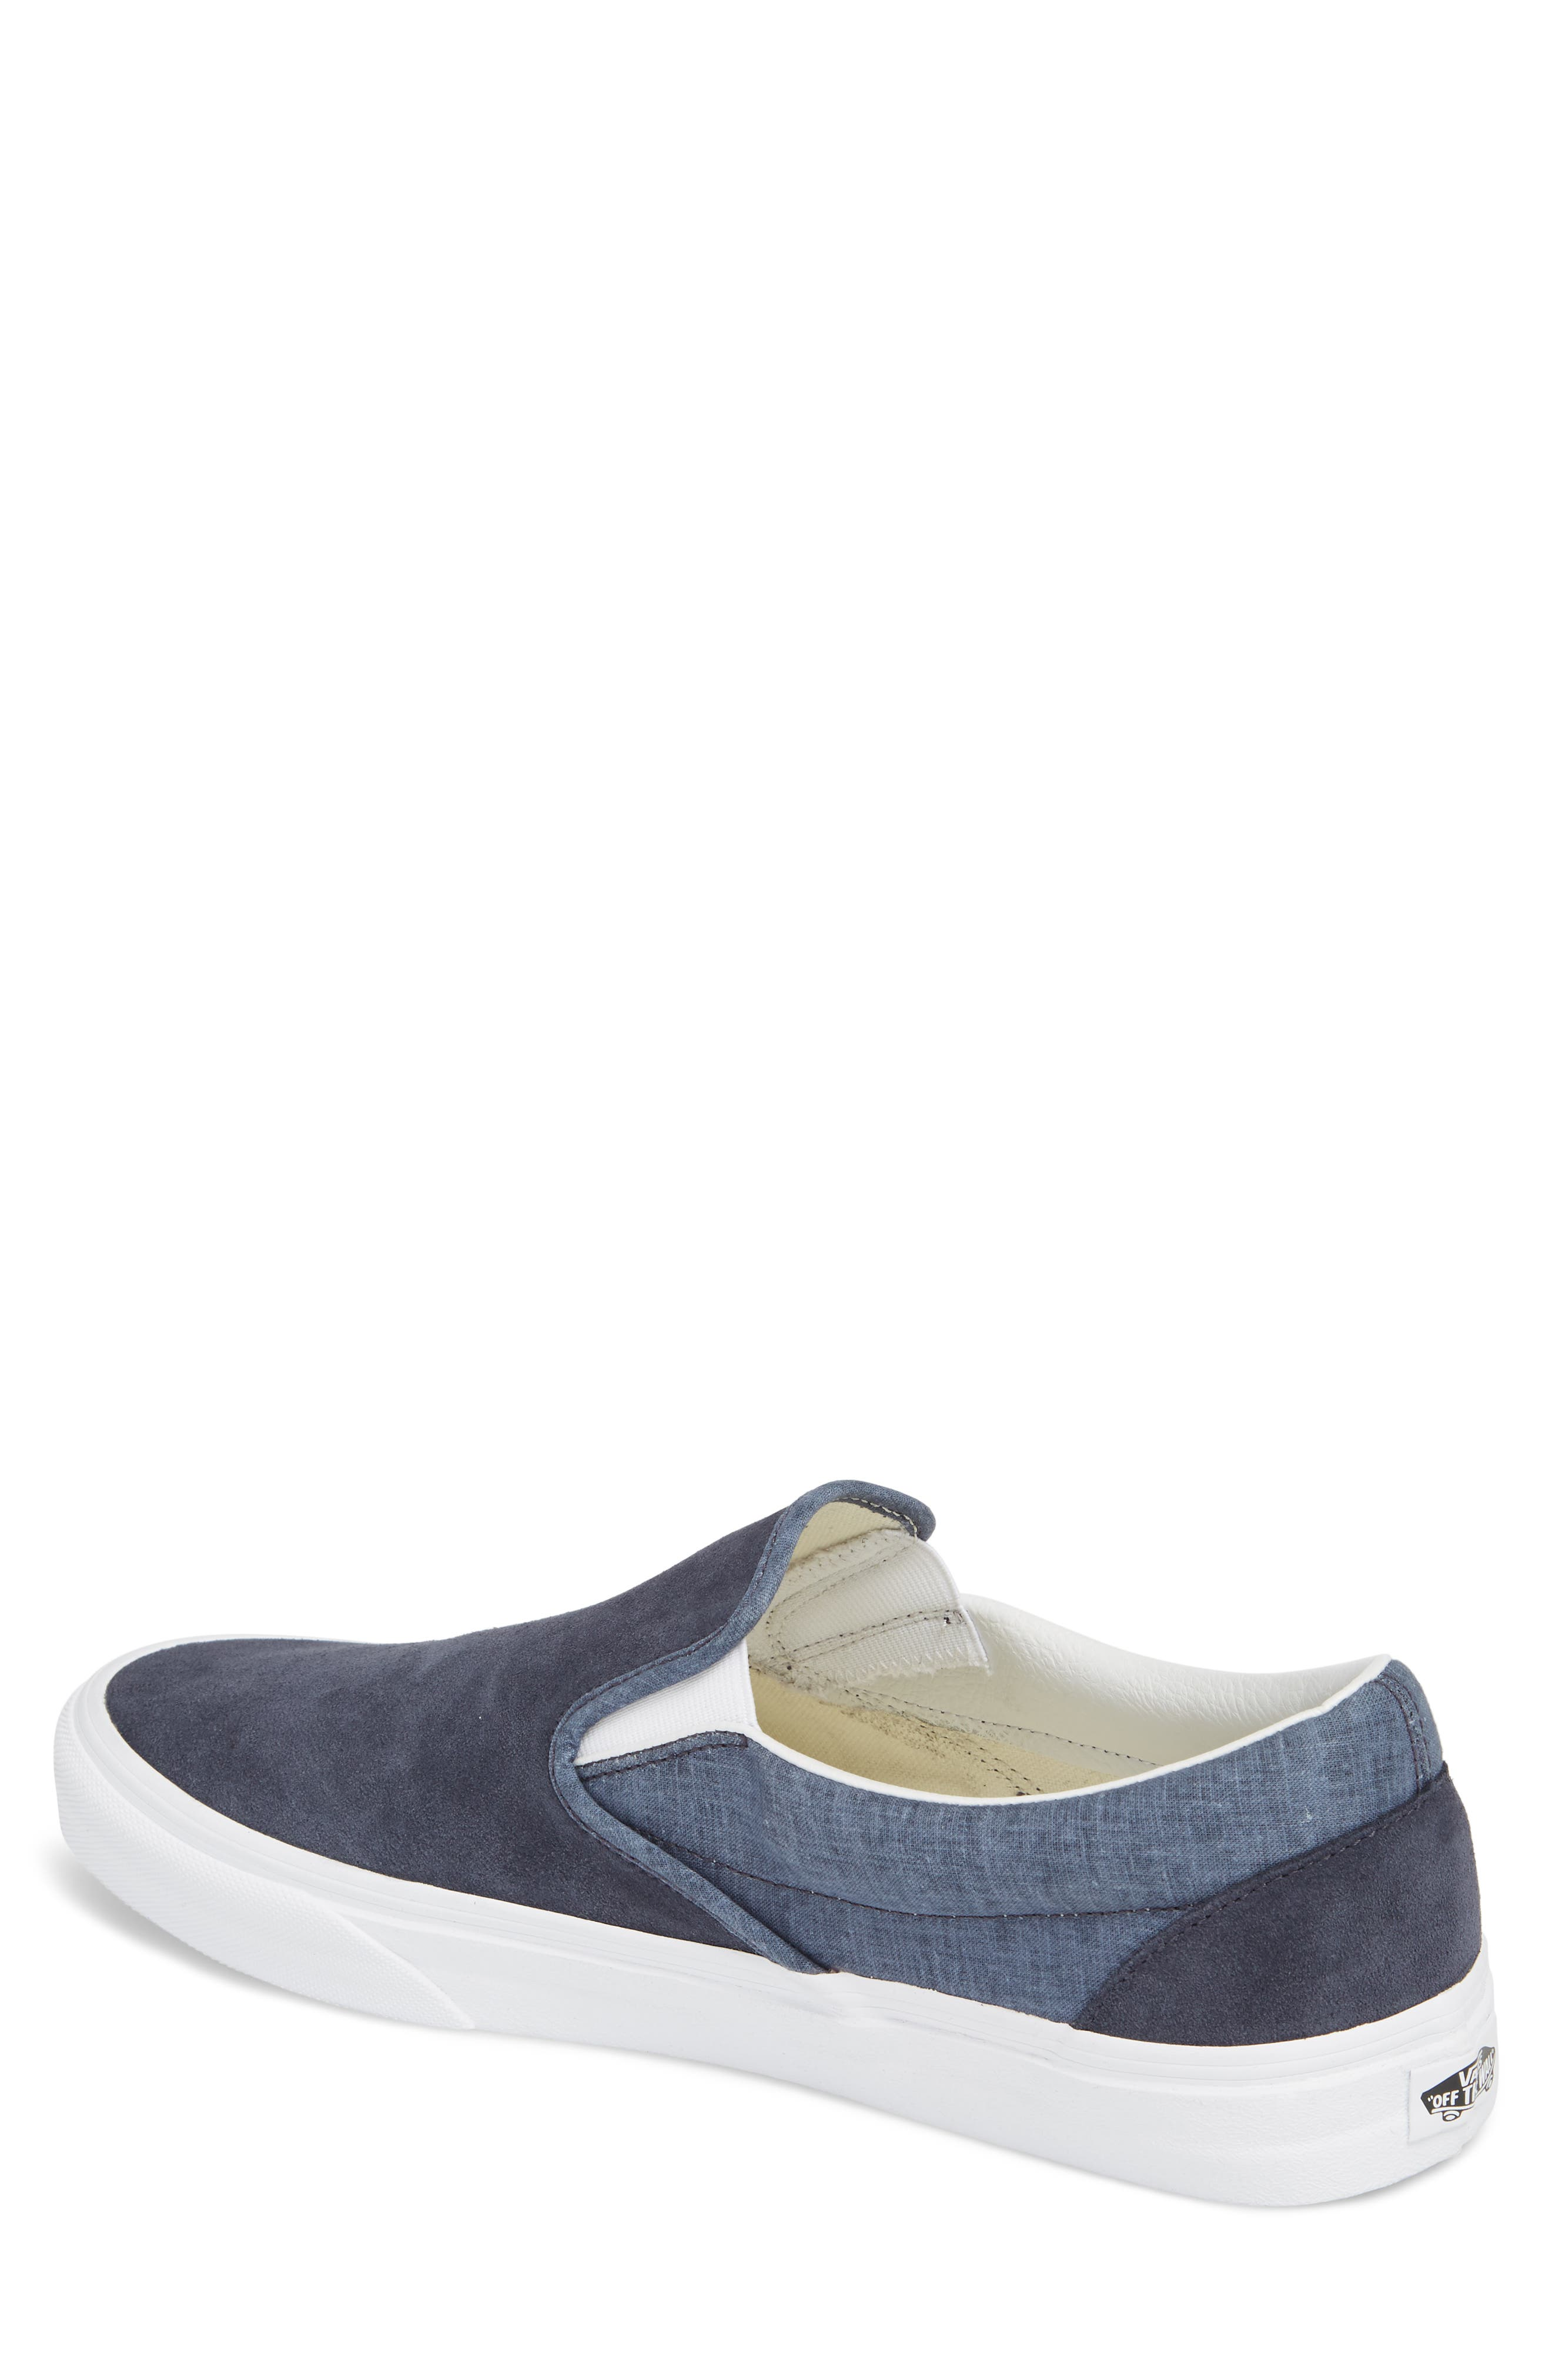 'Classic' Slip-On Sneaker,                             Alternate thumbnail 2, color,                             Parisian Night Suede